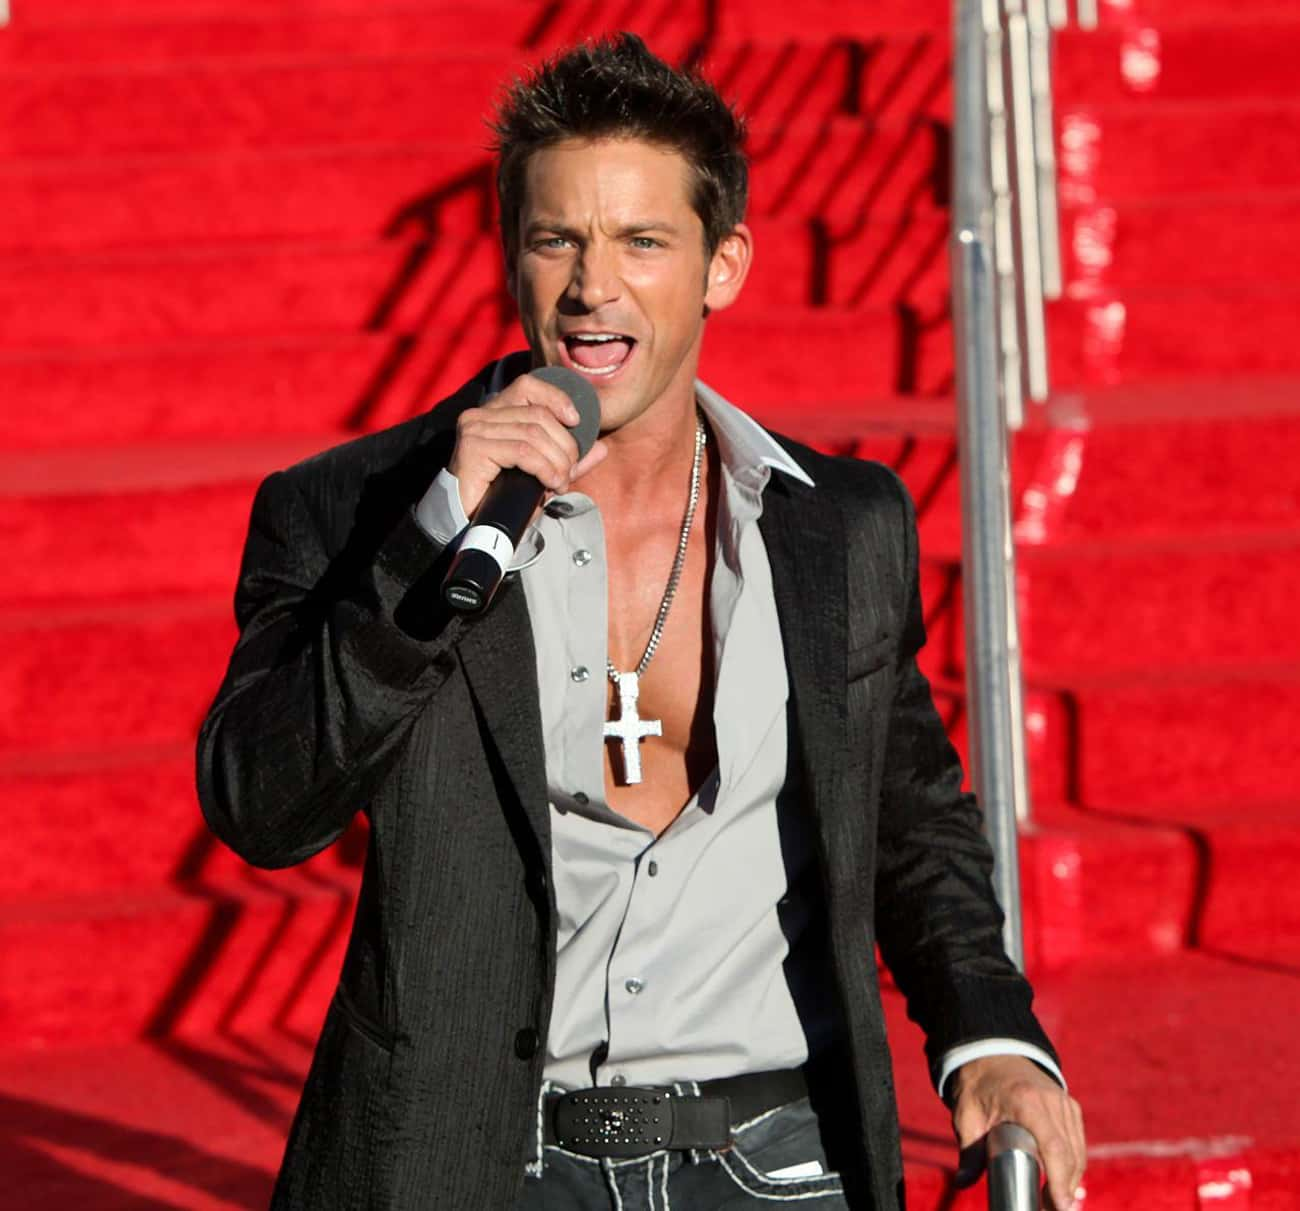 Jeff Timmons From 98 Degrees is listed (or ranked) 3 on the list These Boy Band Members Tried To Go Solo And Failed Miserably